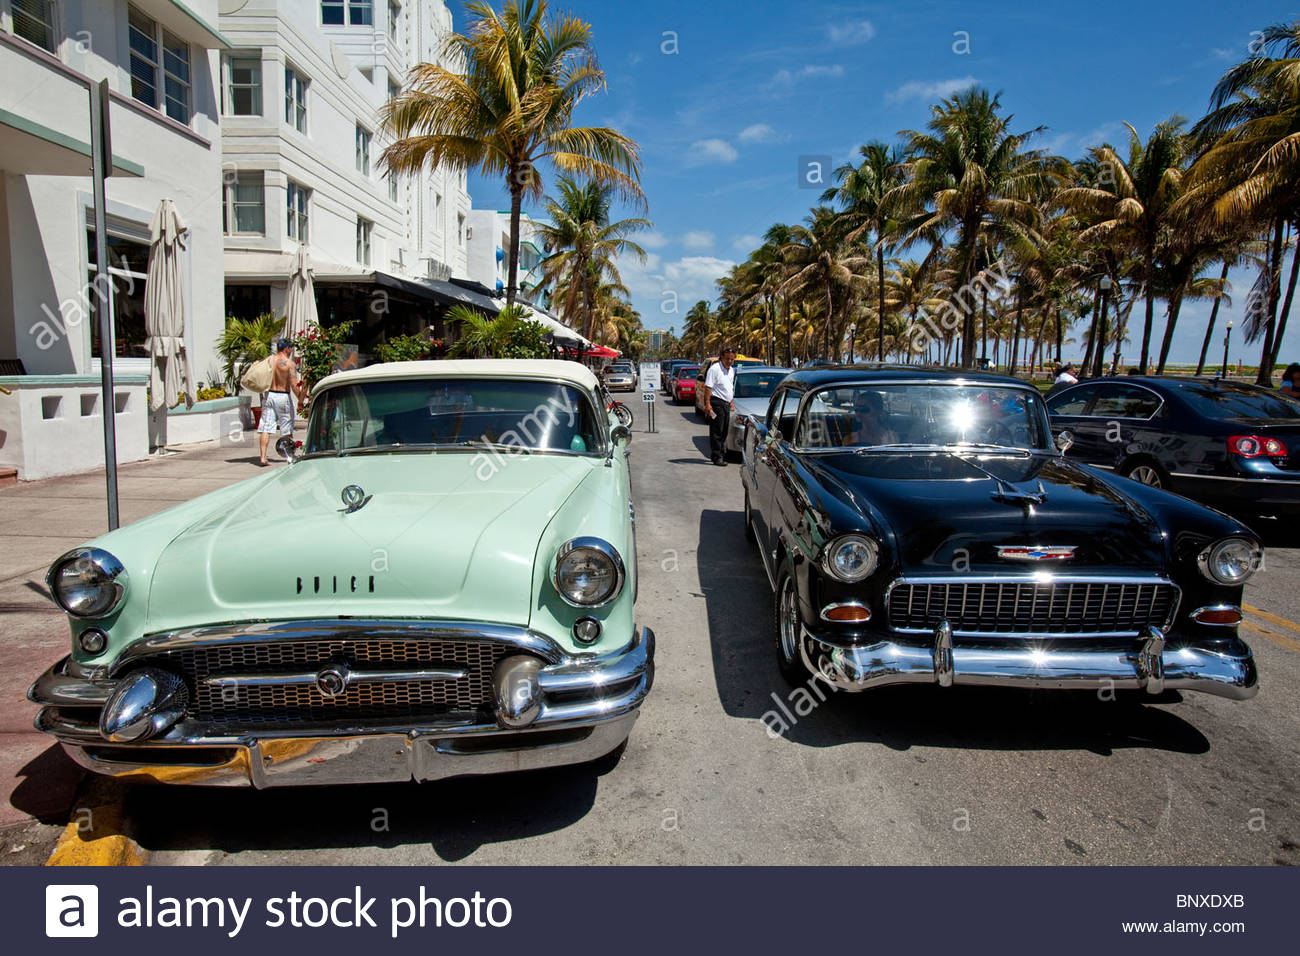 classic american cars ocean drive south beach miami florida usa stock photo 30699827 alamy. Black Bedroom Furniture Sets. Home Design Ideas